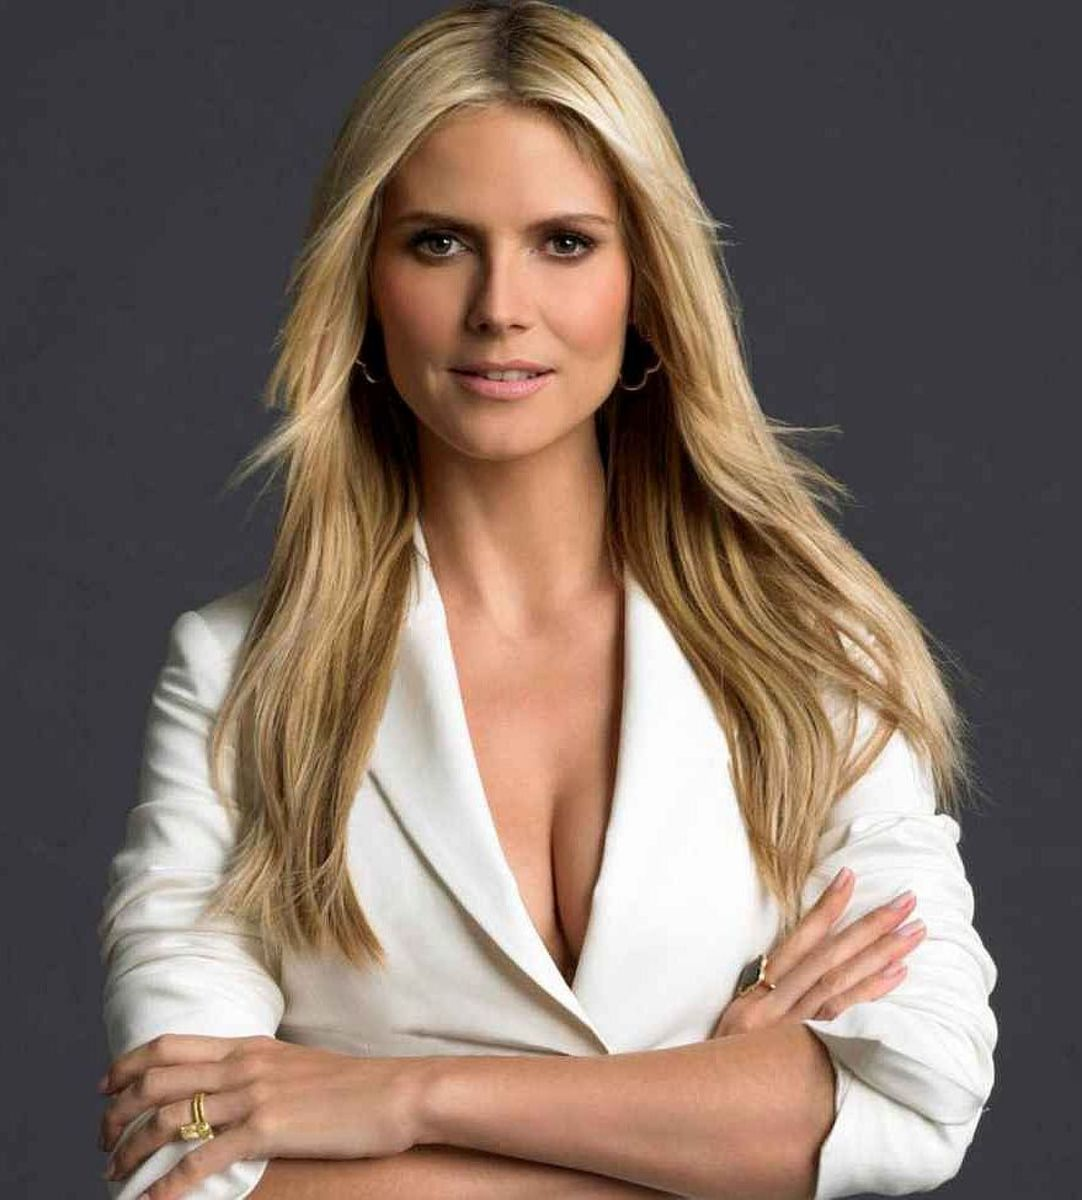 Heidi Klum - Beautiful Women Over 40